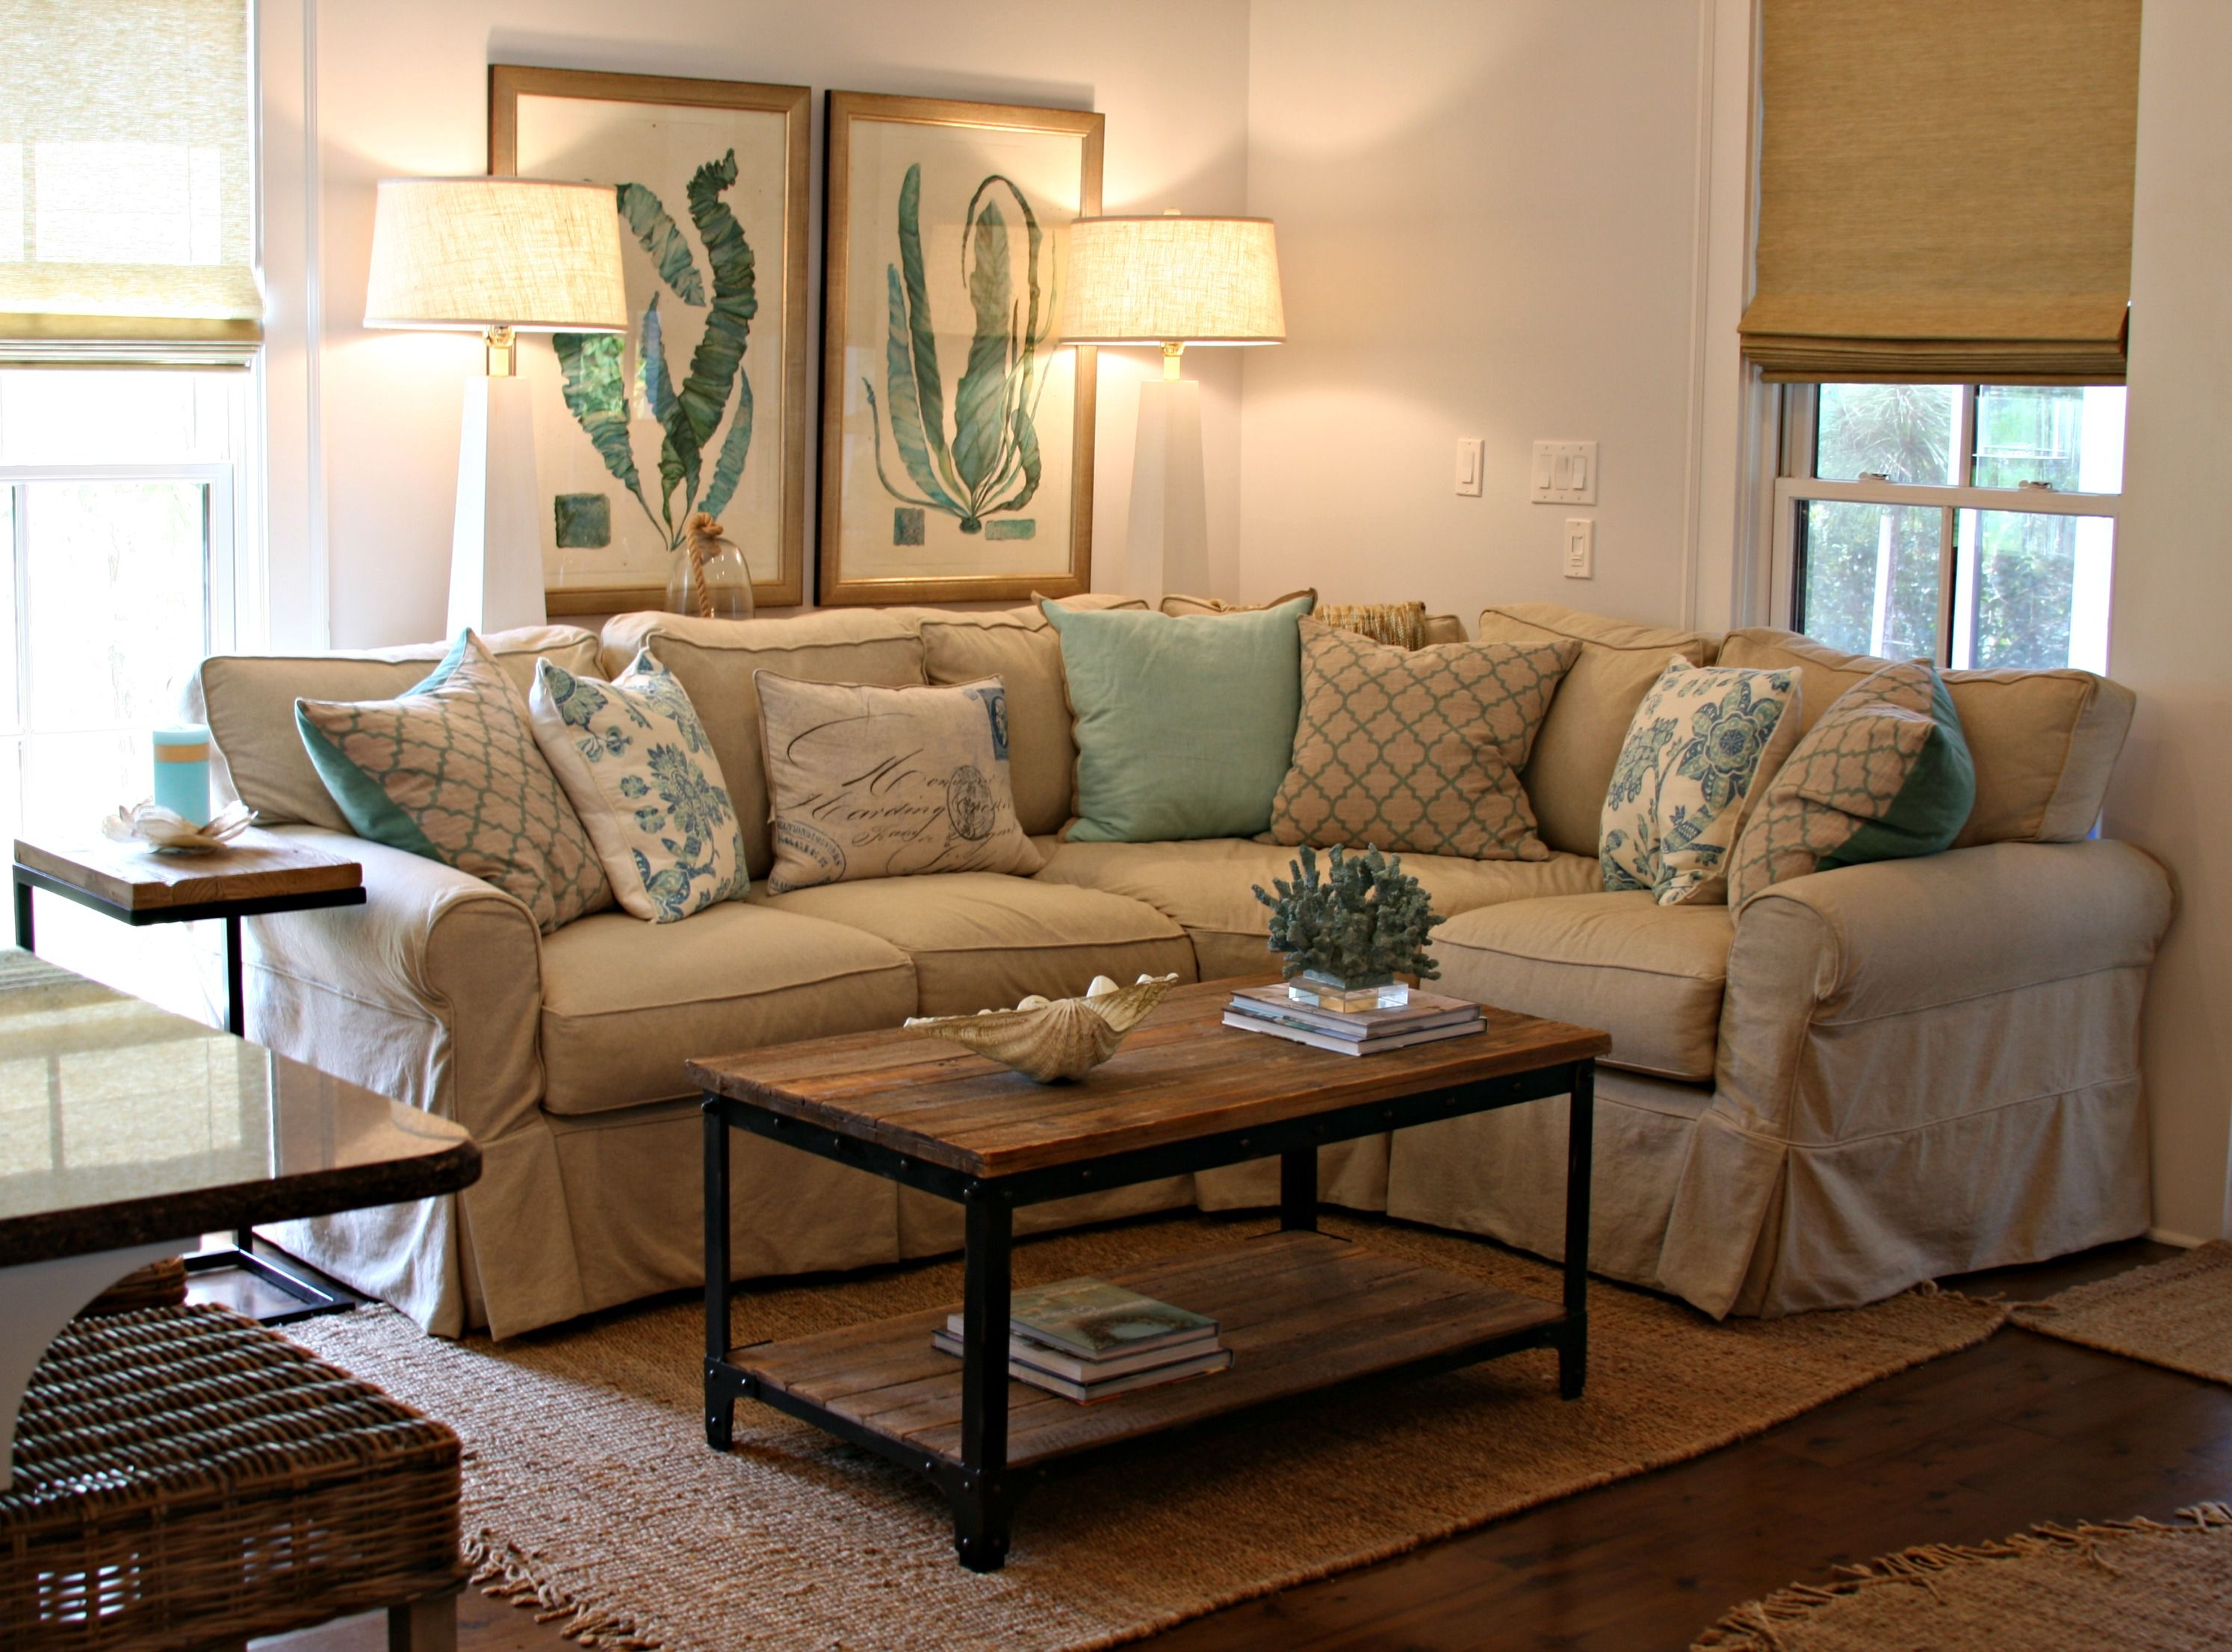 Home Decorative Design Best 25 43 Coastal Living Rooms Ideas On Pinterest Beach